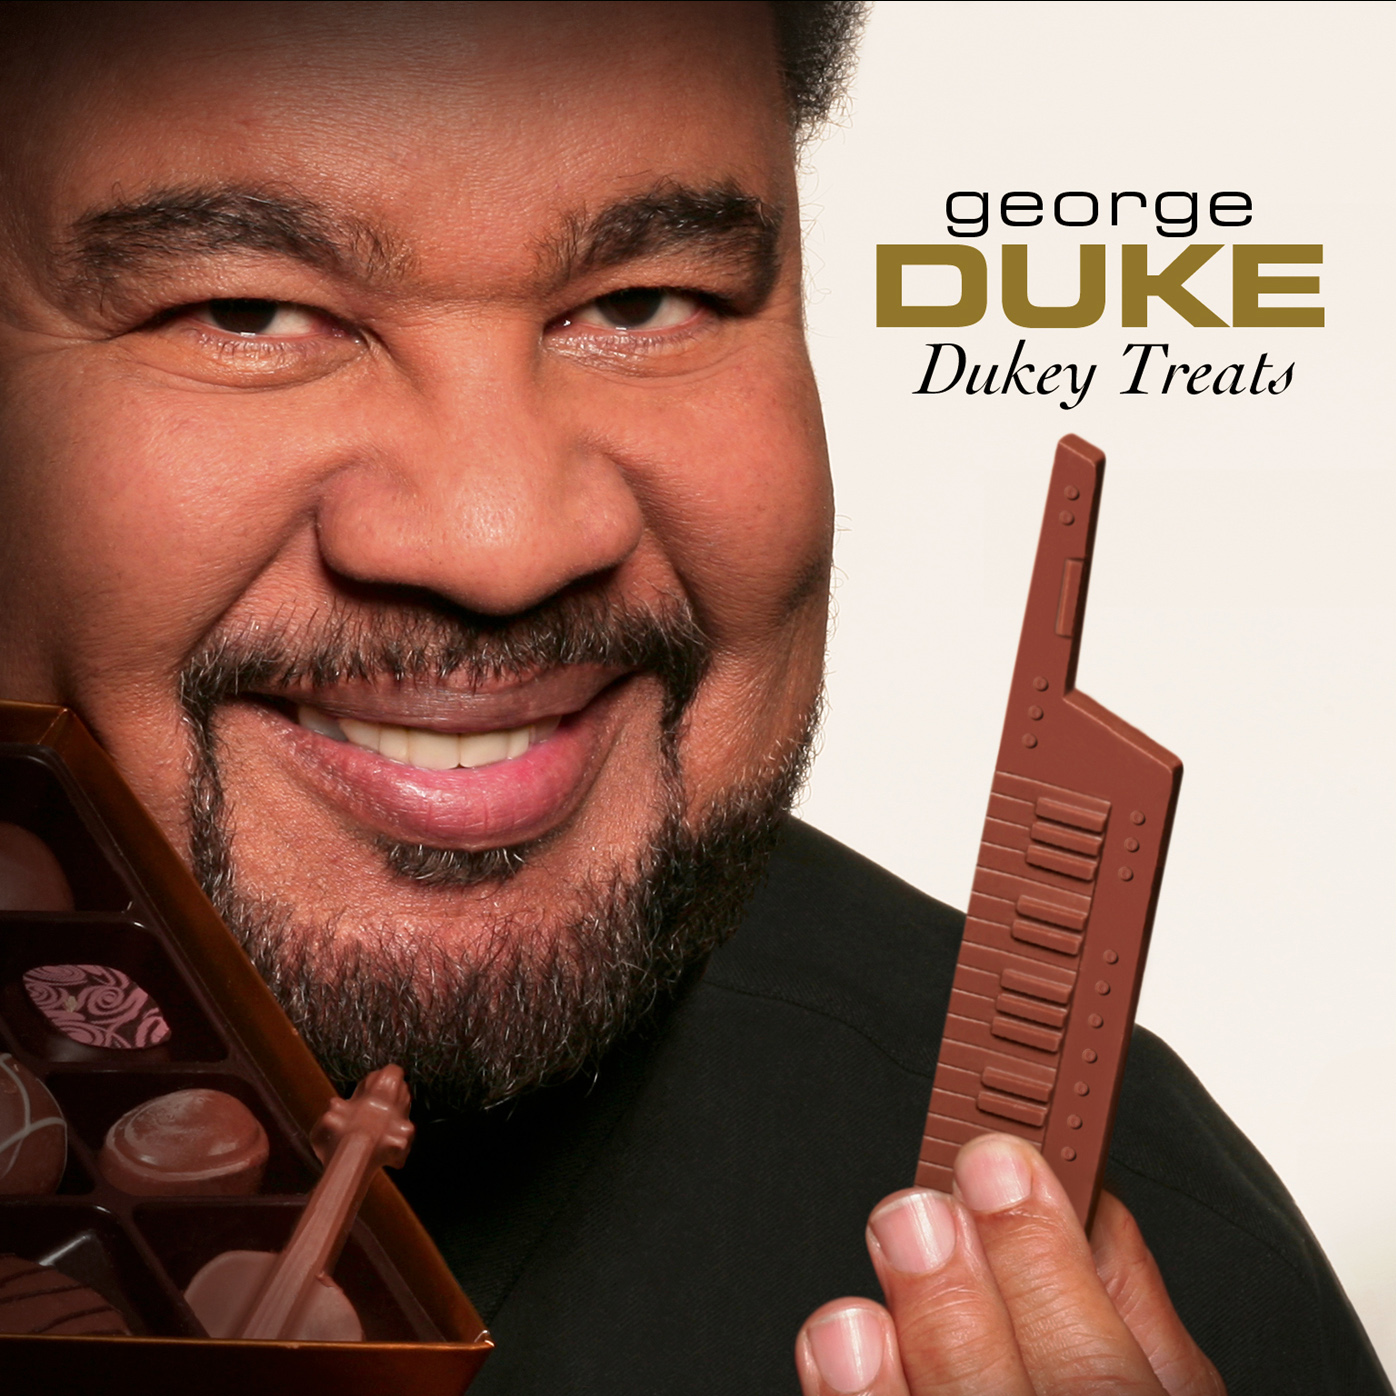 George Duke, Volume 1